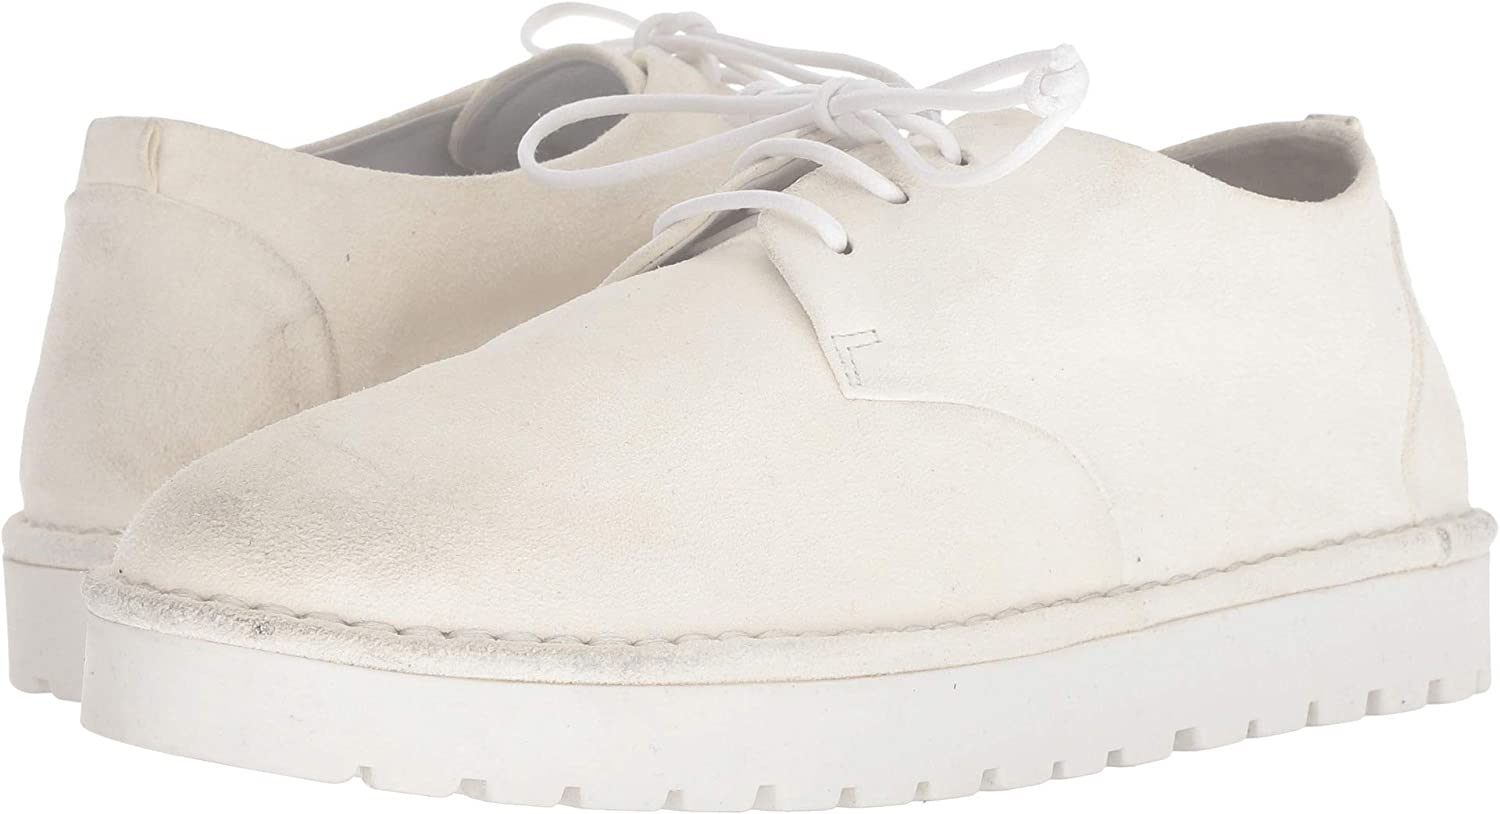 White marsell Womens Gomme Patent Lace-Up